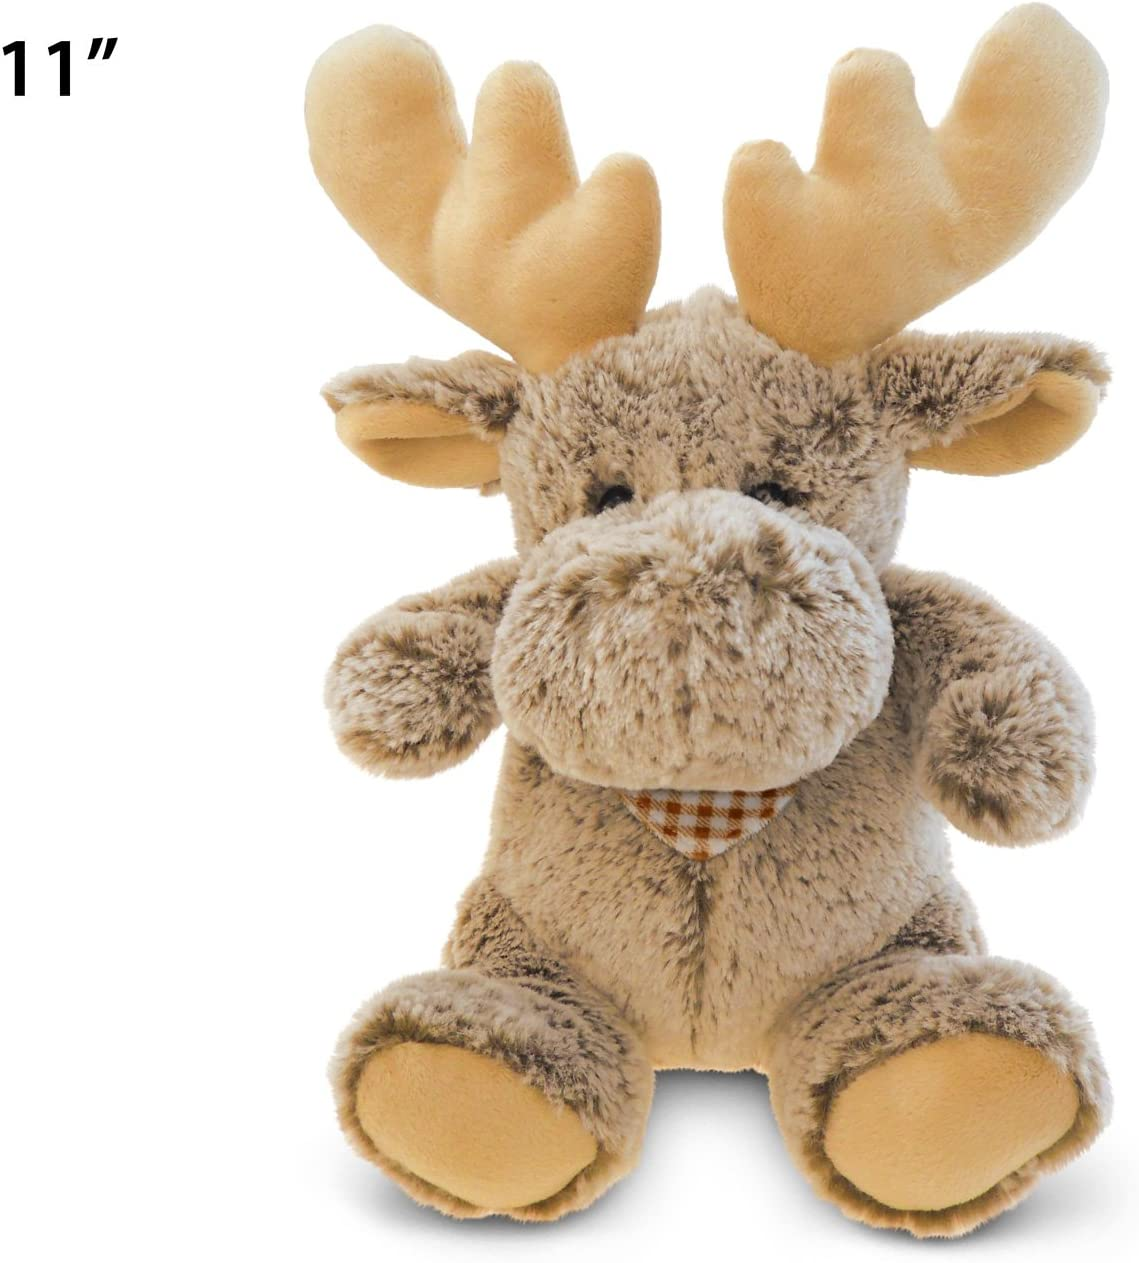 Puzzled Super-Soft Sitting Moose Plush 11 11 Getting Fit 5047